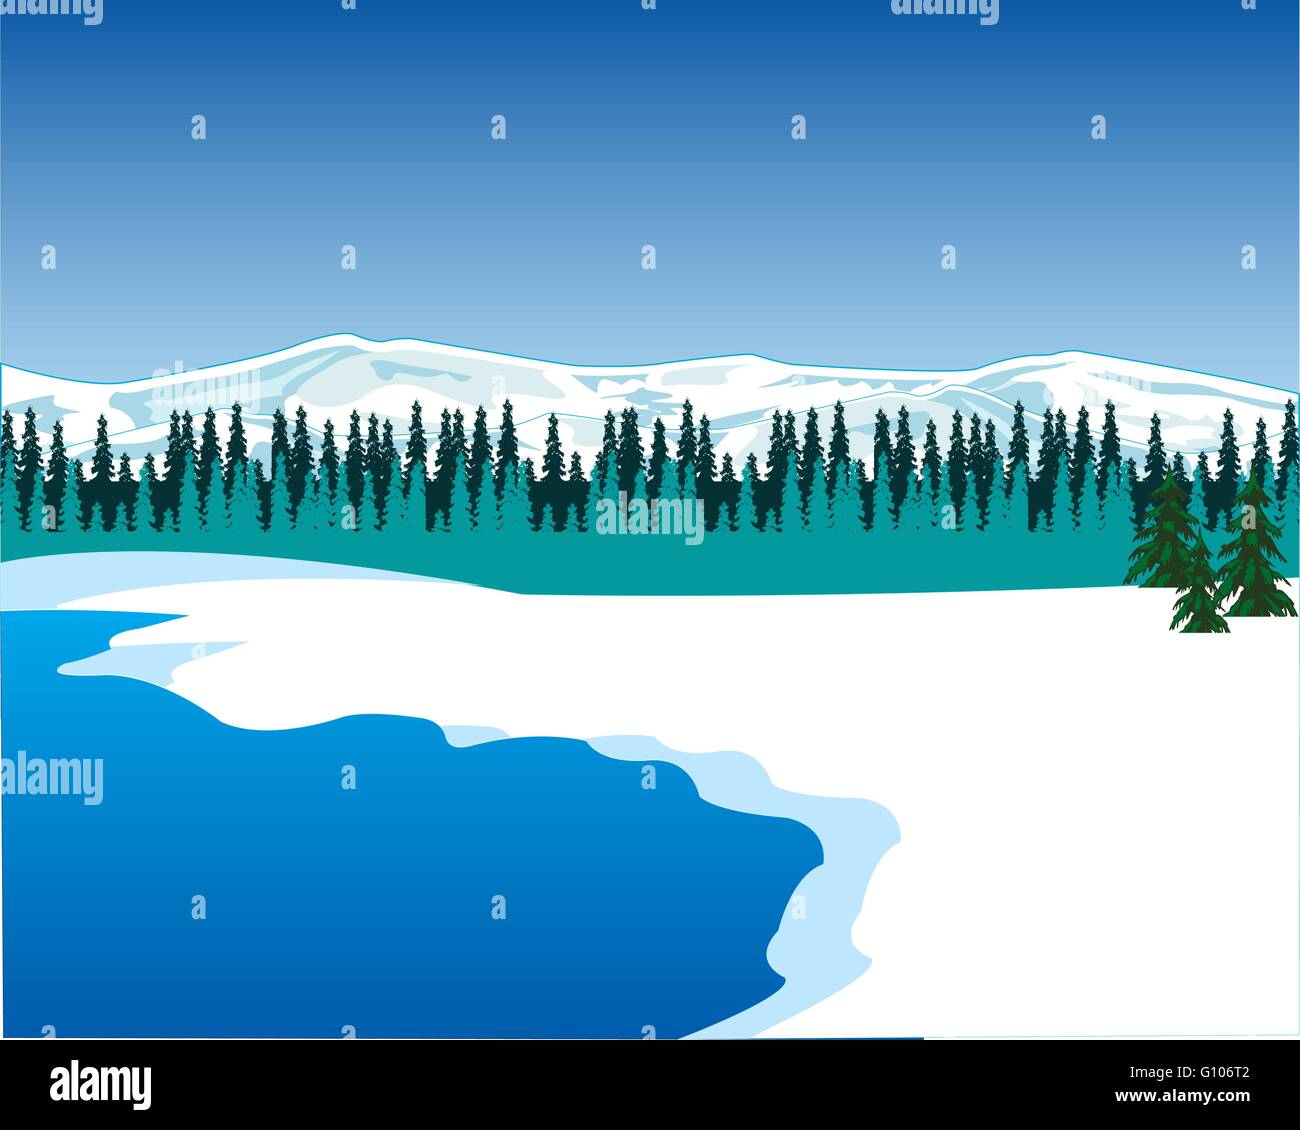 The Landscape of the seaside north epidemic deathes.Vector illustration - Stock Vector